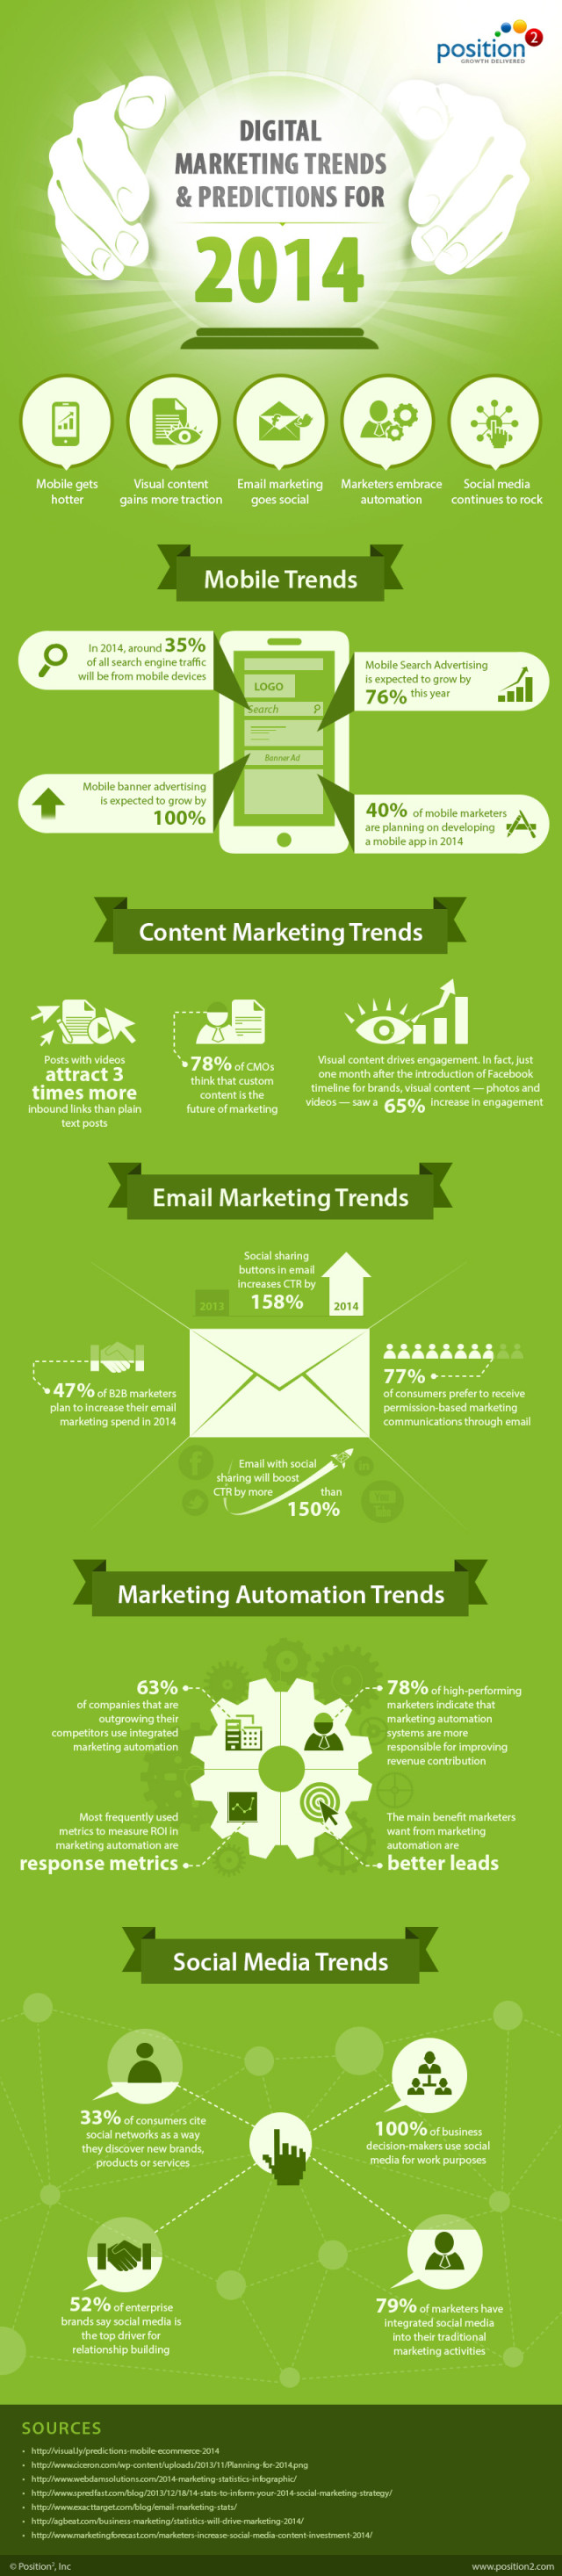 2. Digital Marketing Trends & Predictions for 2014